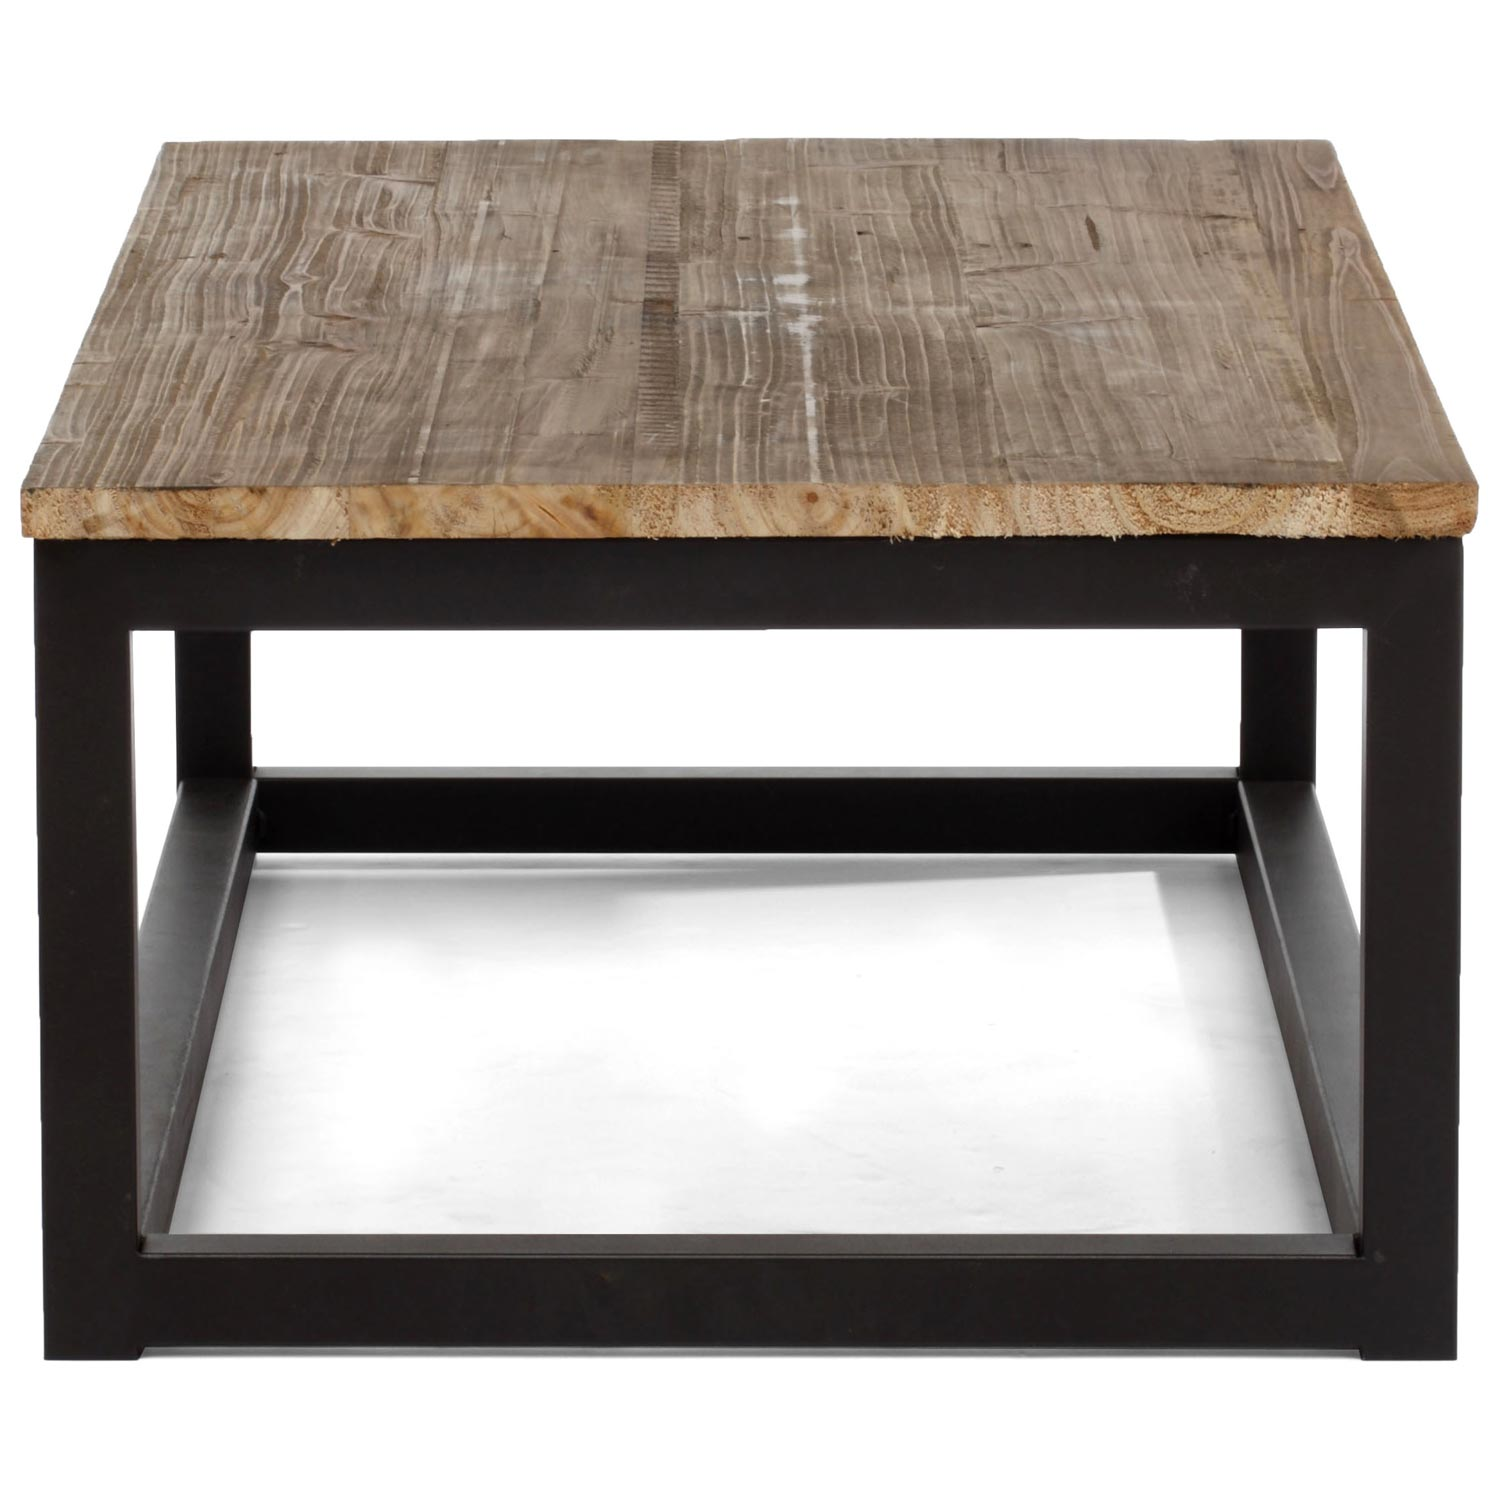 Civic Center Long Coffee Table Antique Metal Planked